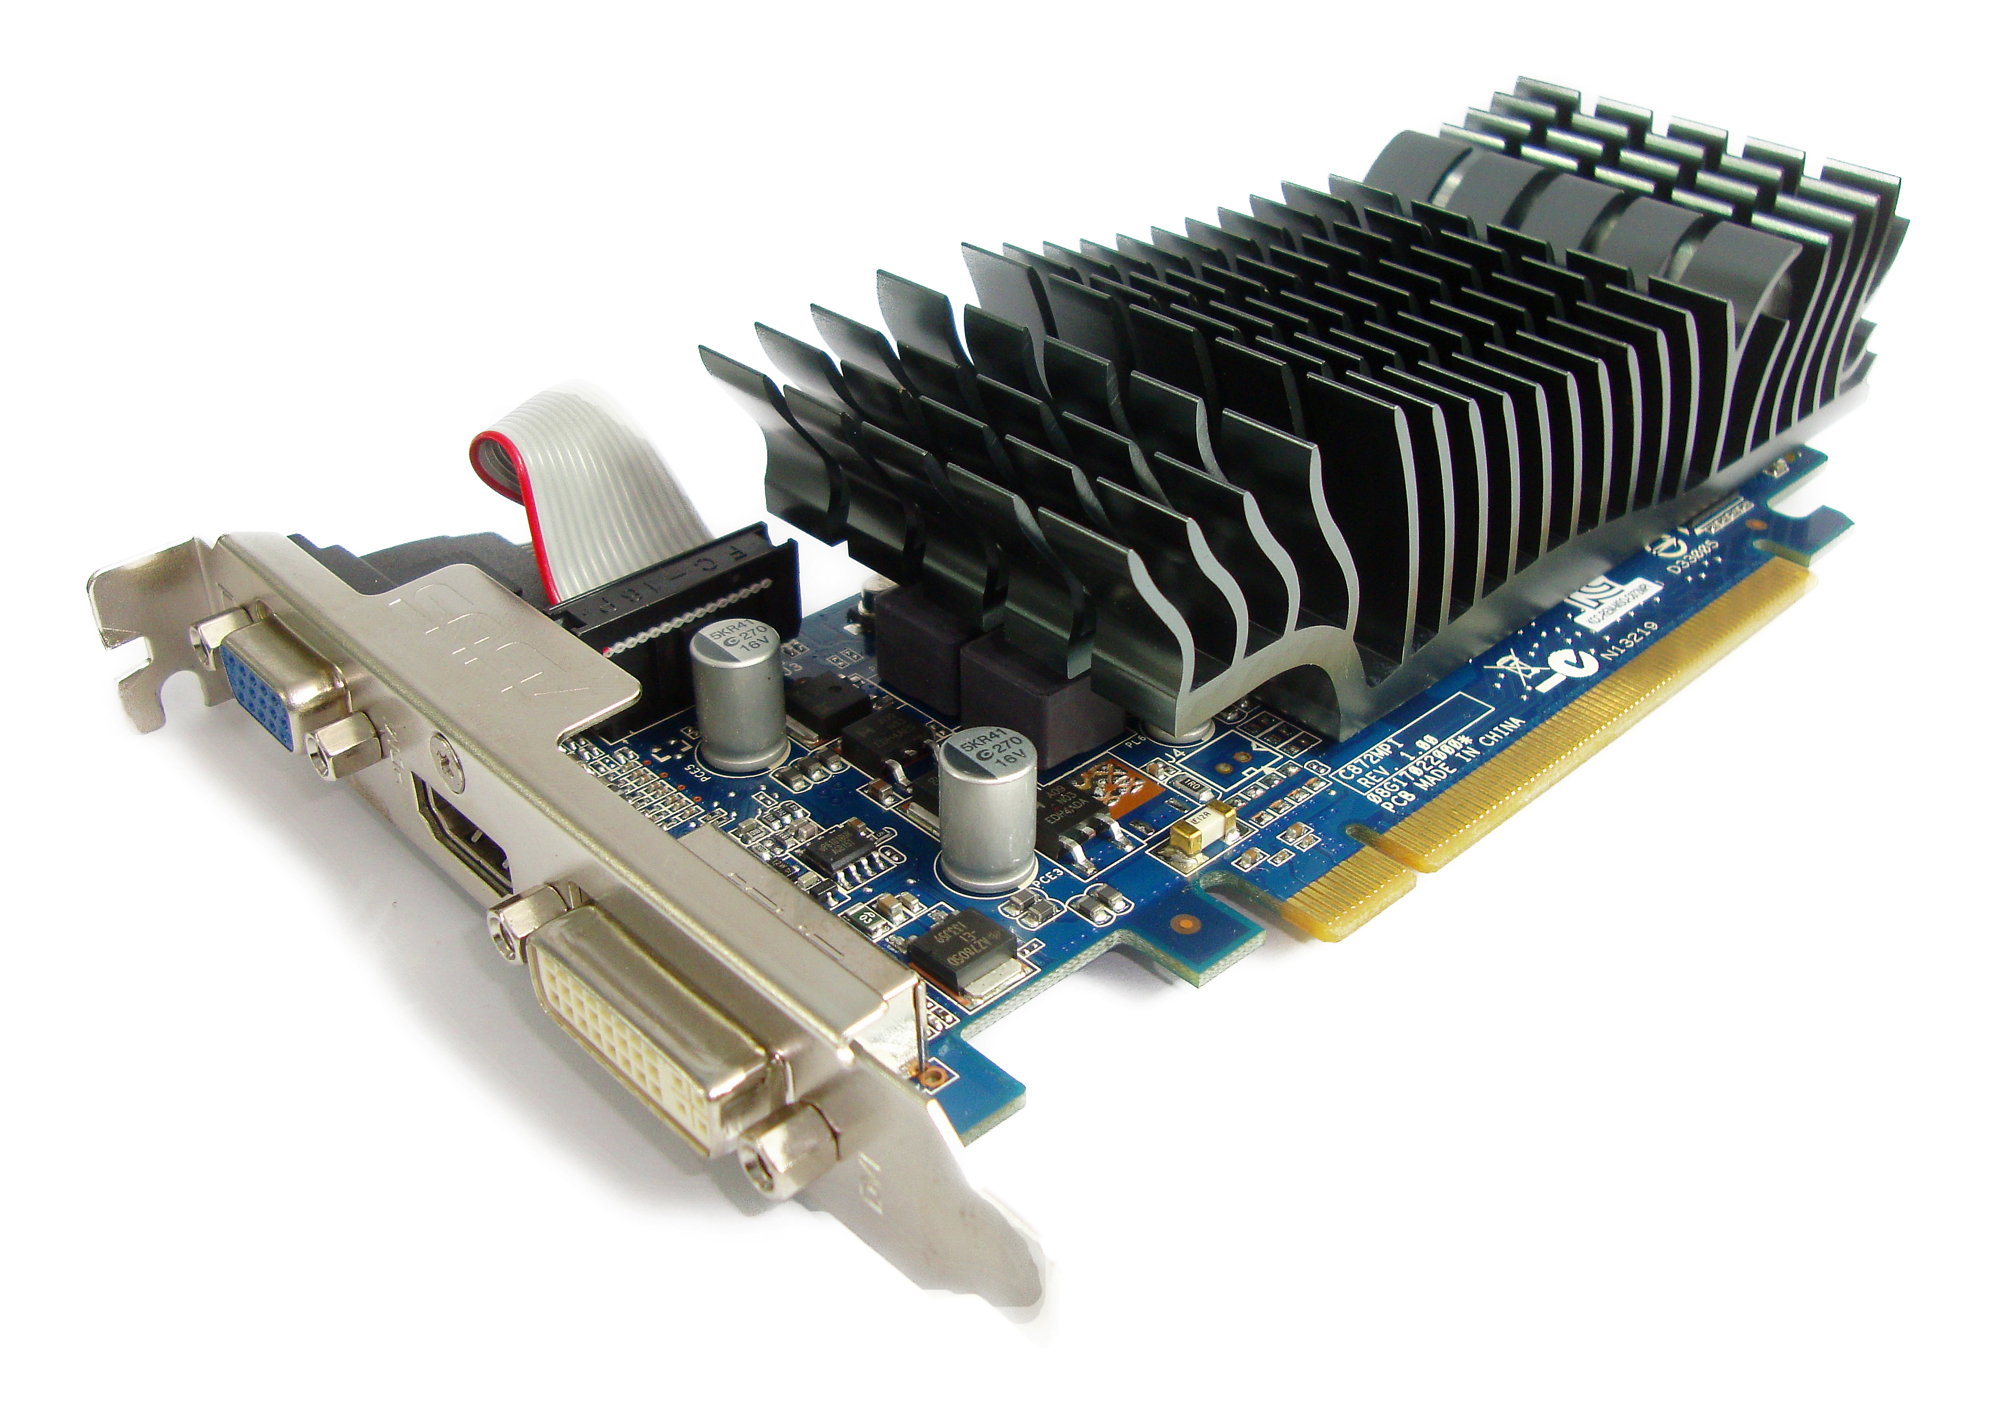 https://upload.wikimedia.org/wikipedia/commons/3/38/ASUS_NVIDIA_GeForce_210_silent_graphics_card_with_HDMI.JPG